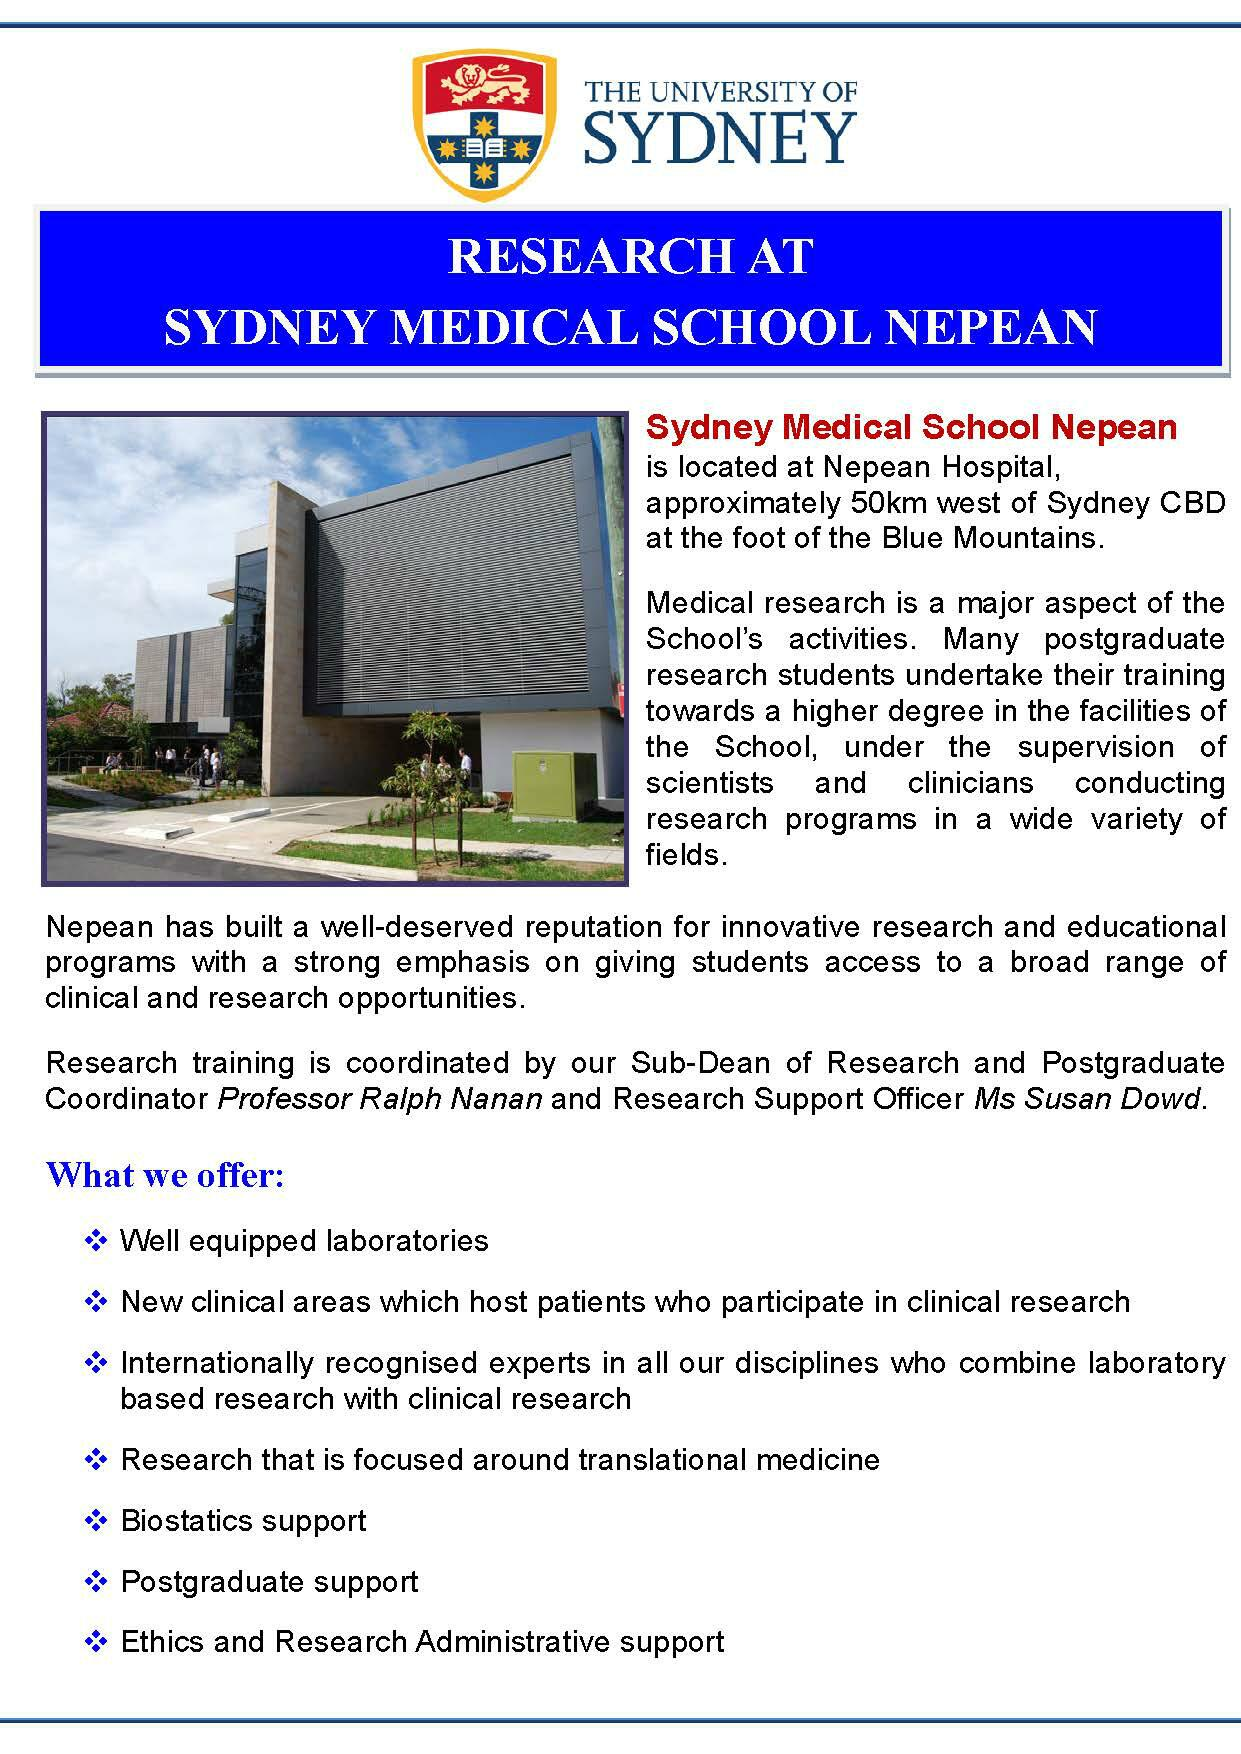 Interested in joining our team at Nepean? http://t.co/HgyWUN2xGn